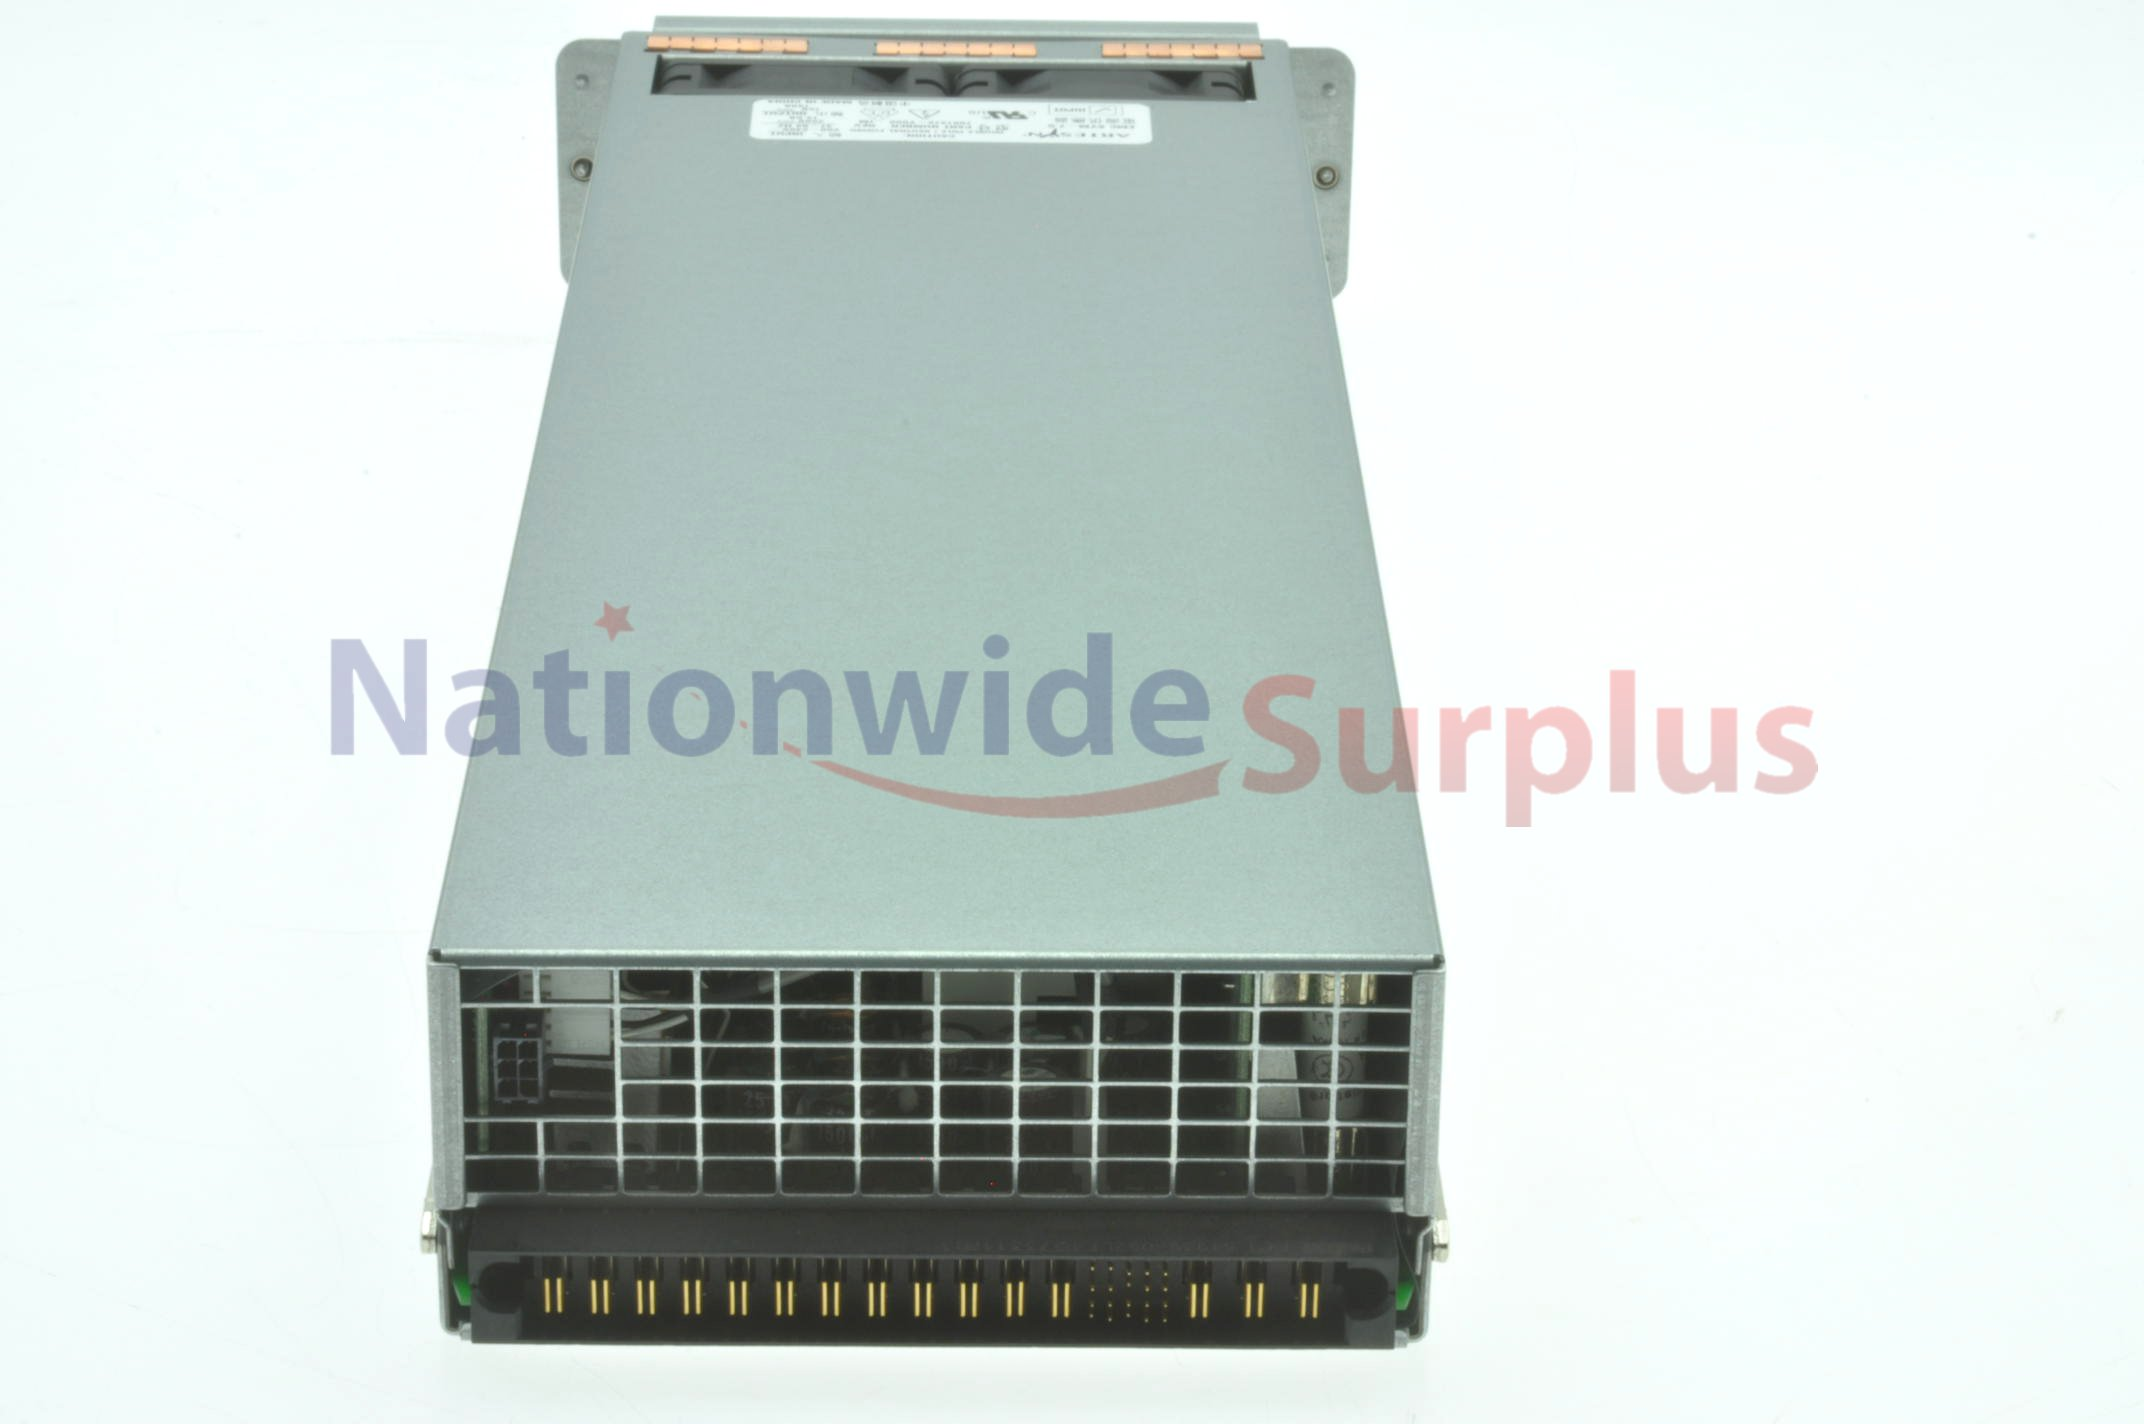 protection, distribution ups batteries & components  item #: 071